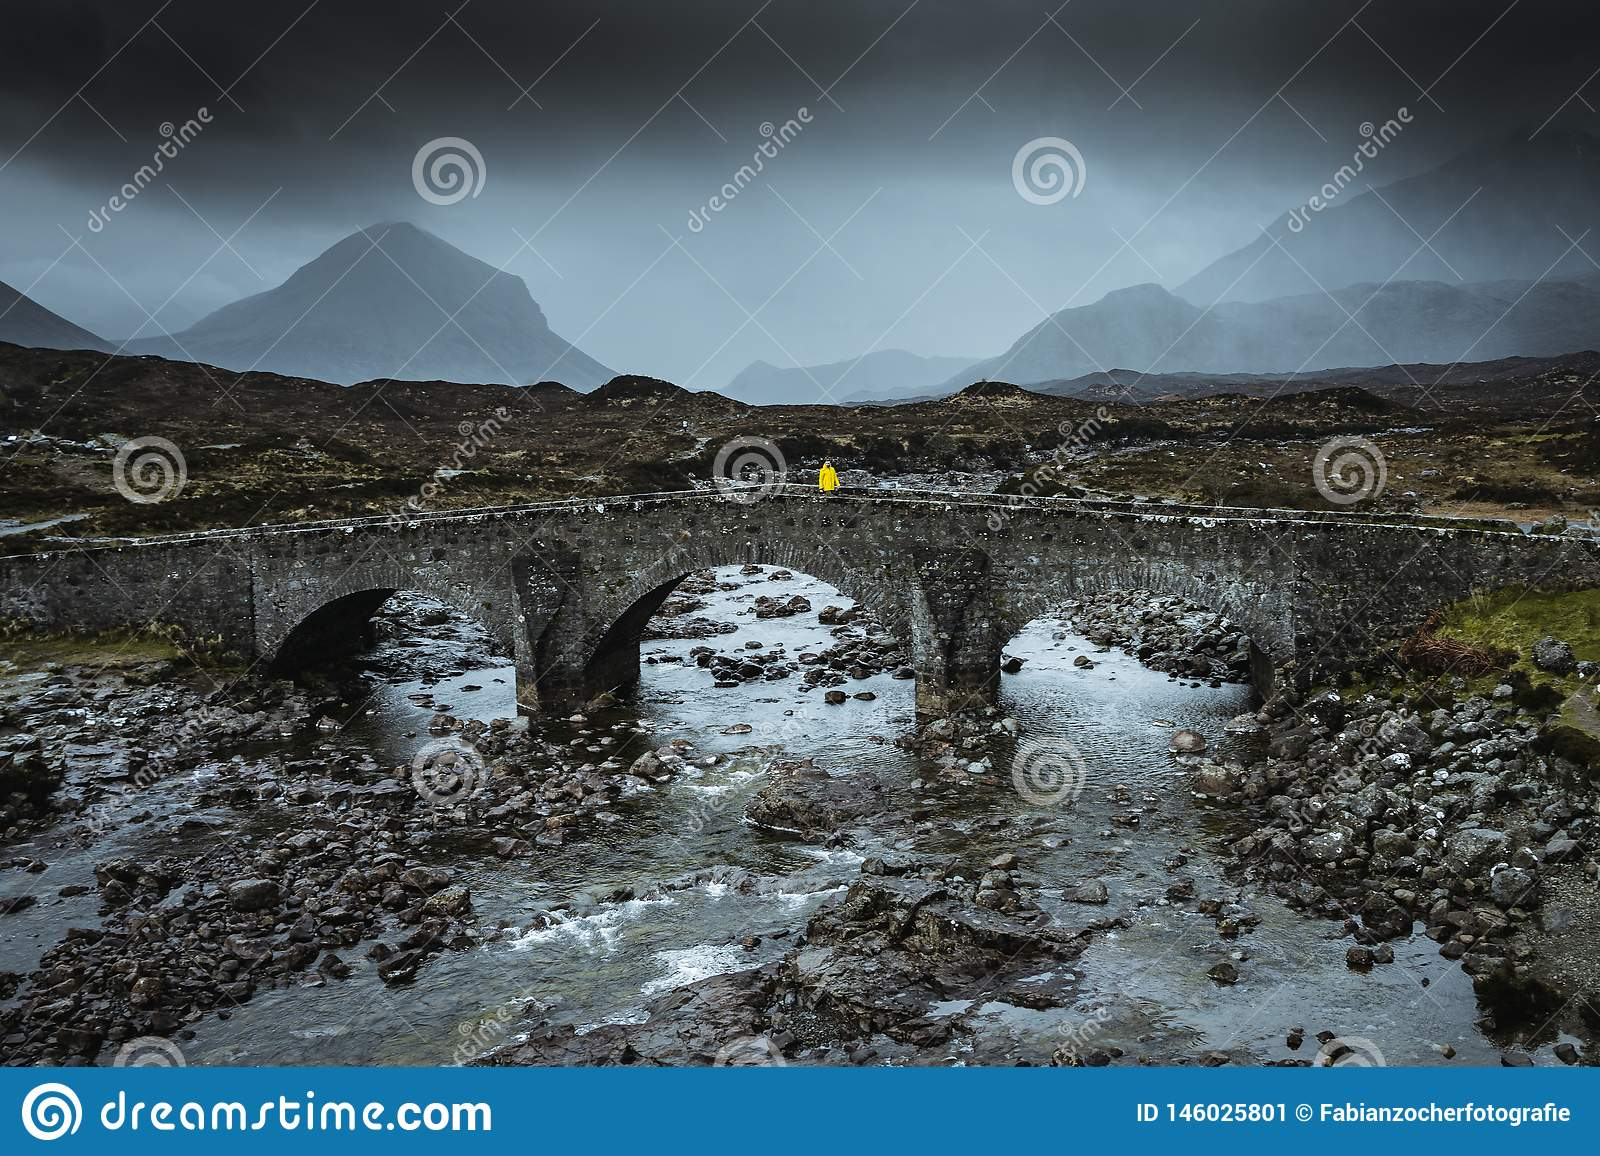 Sligachan old bridge in Scotland